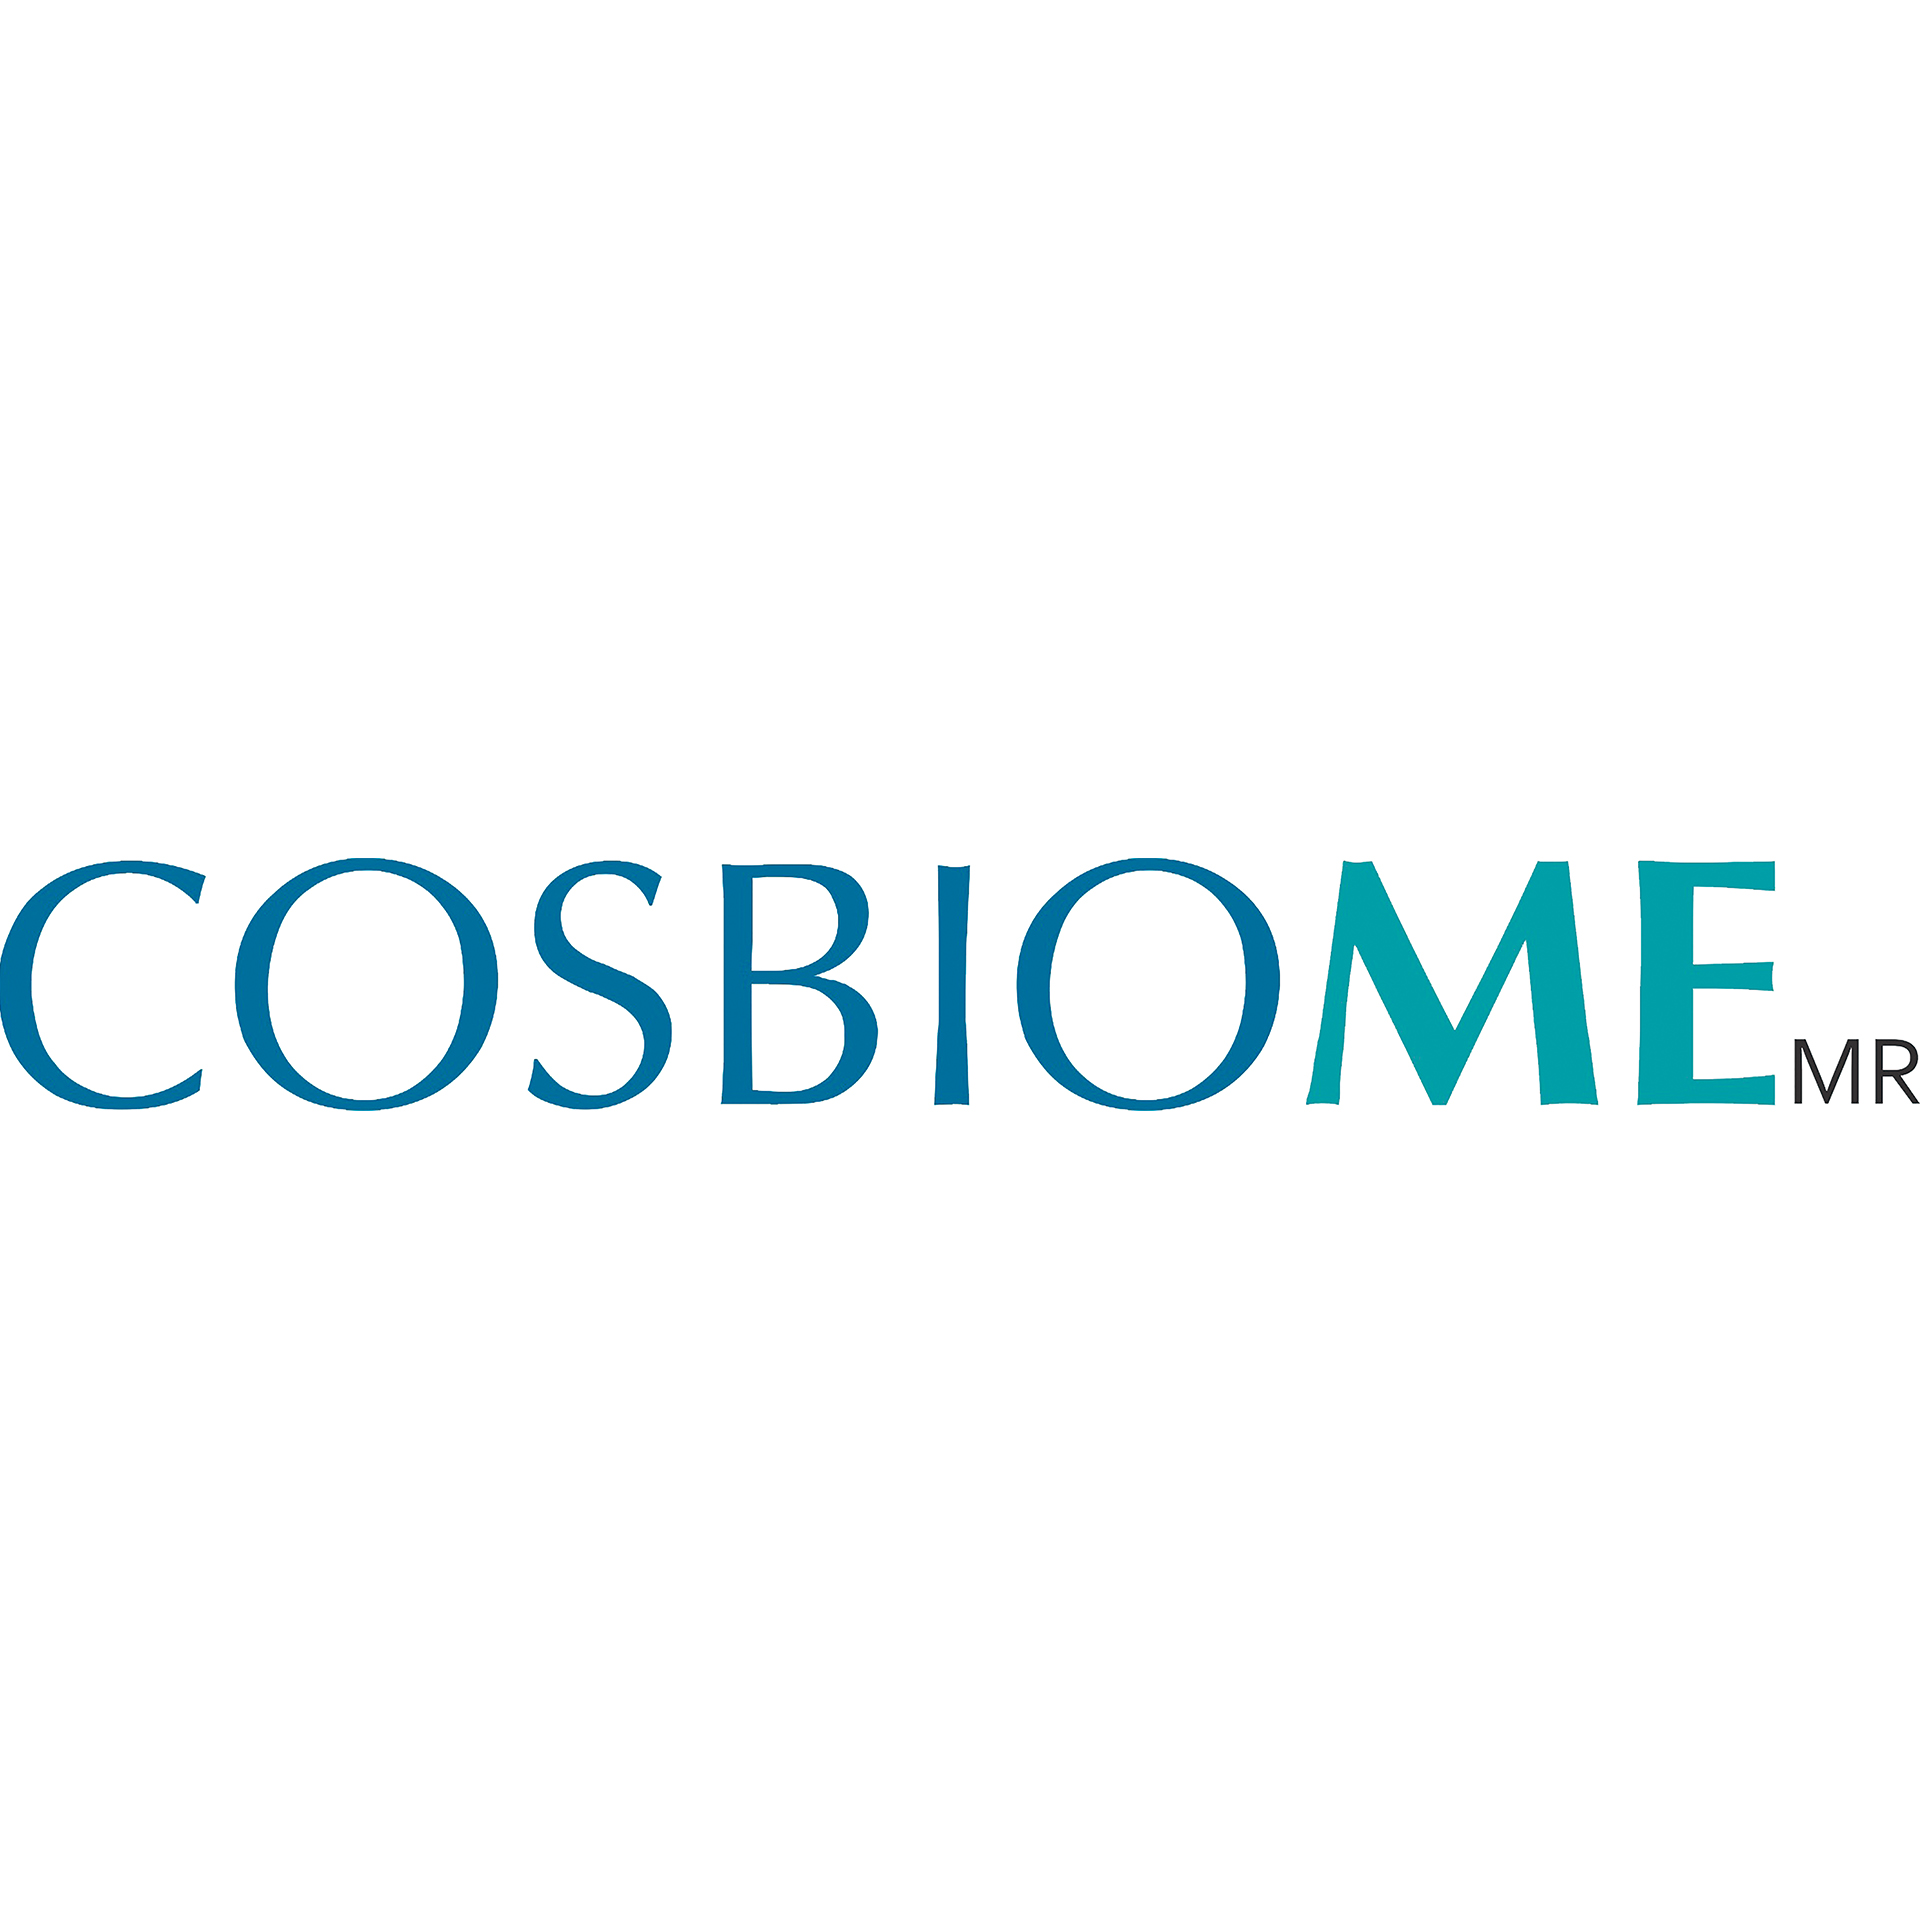 COSBIOME